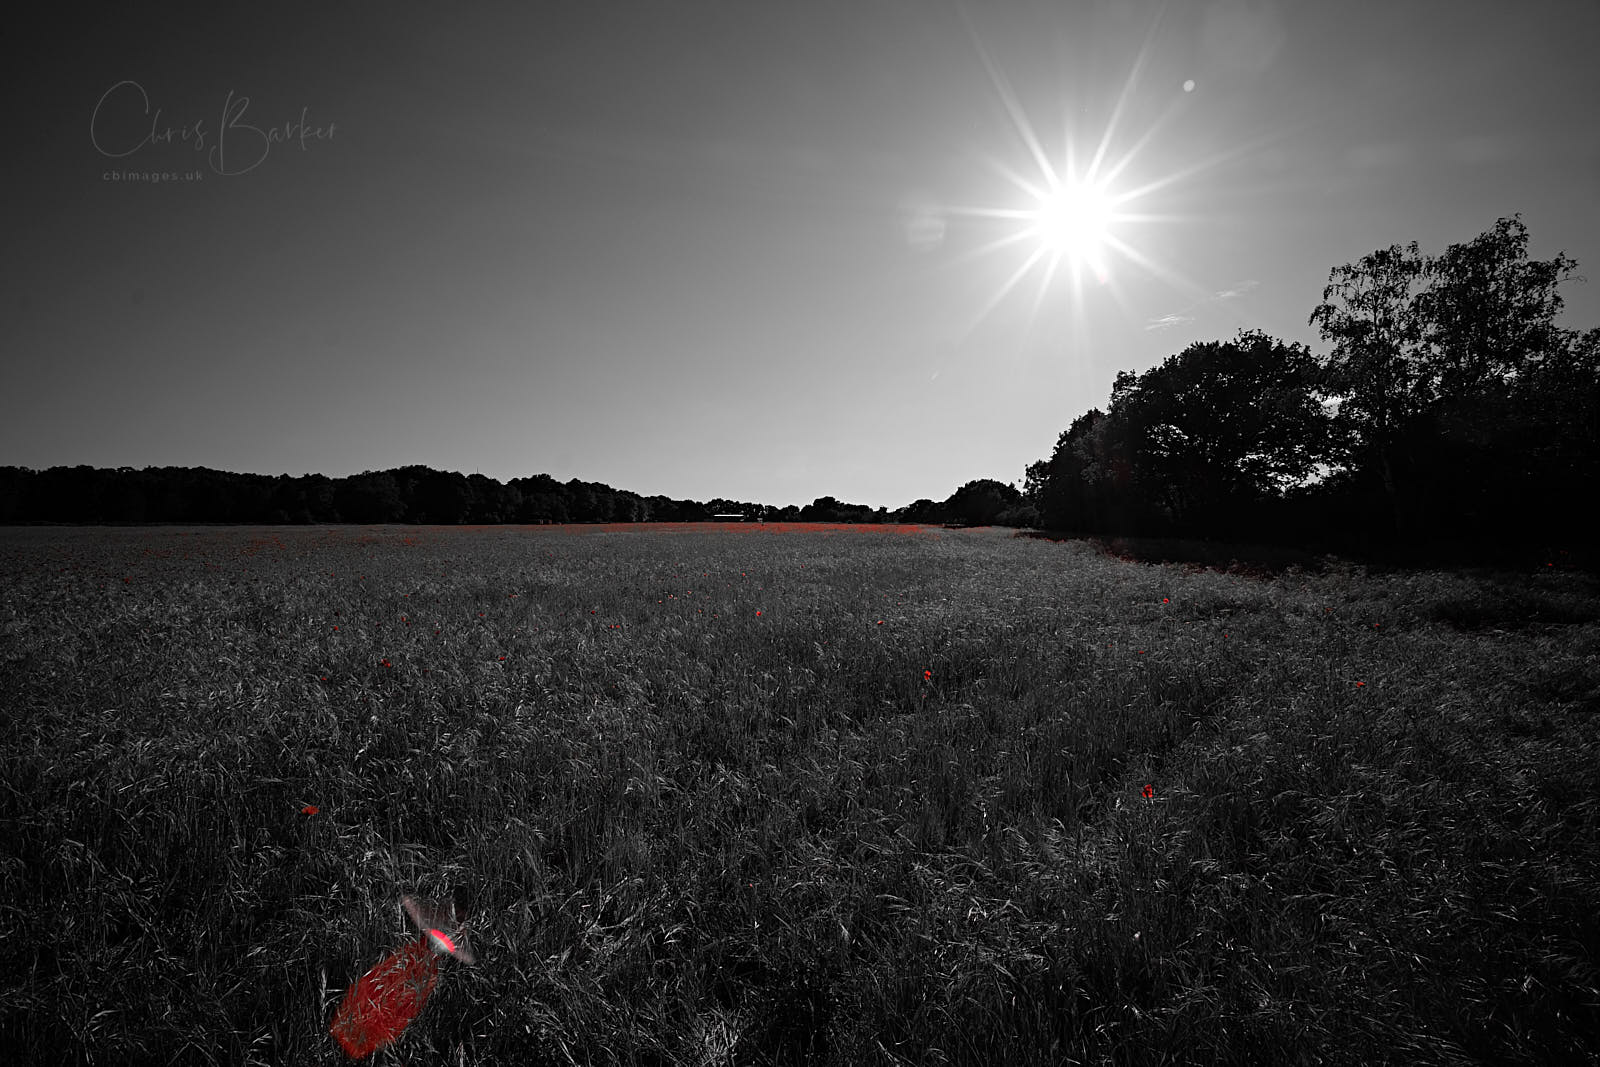 A wide angle photo in monochrome of a field with the sun